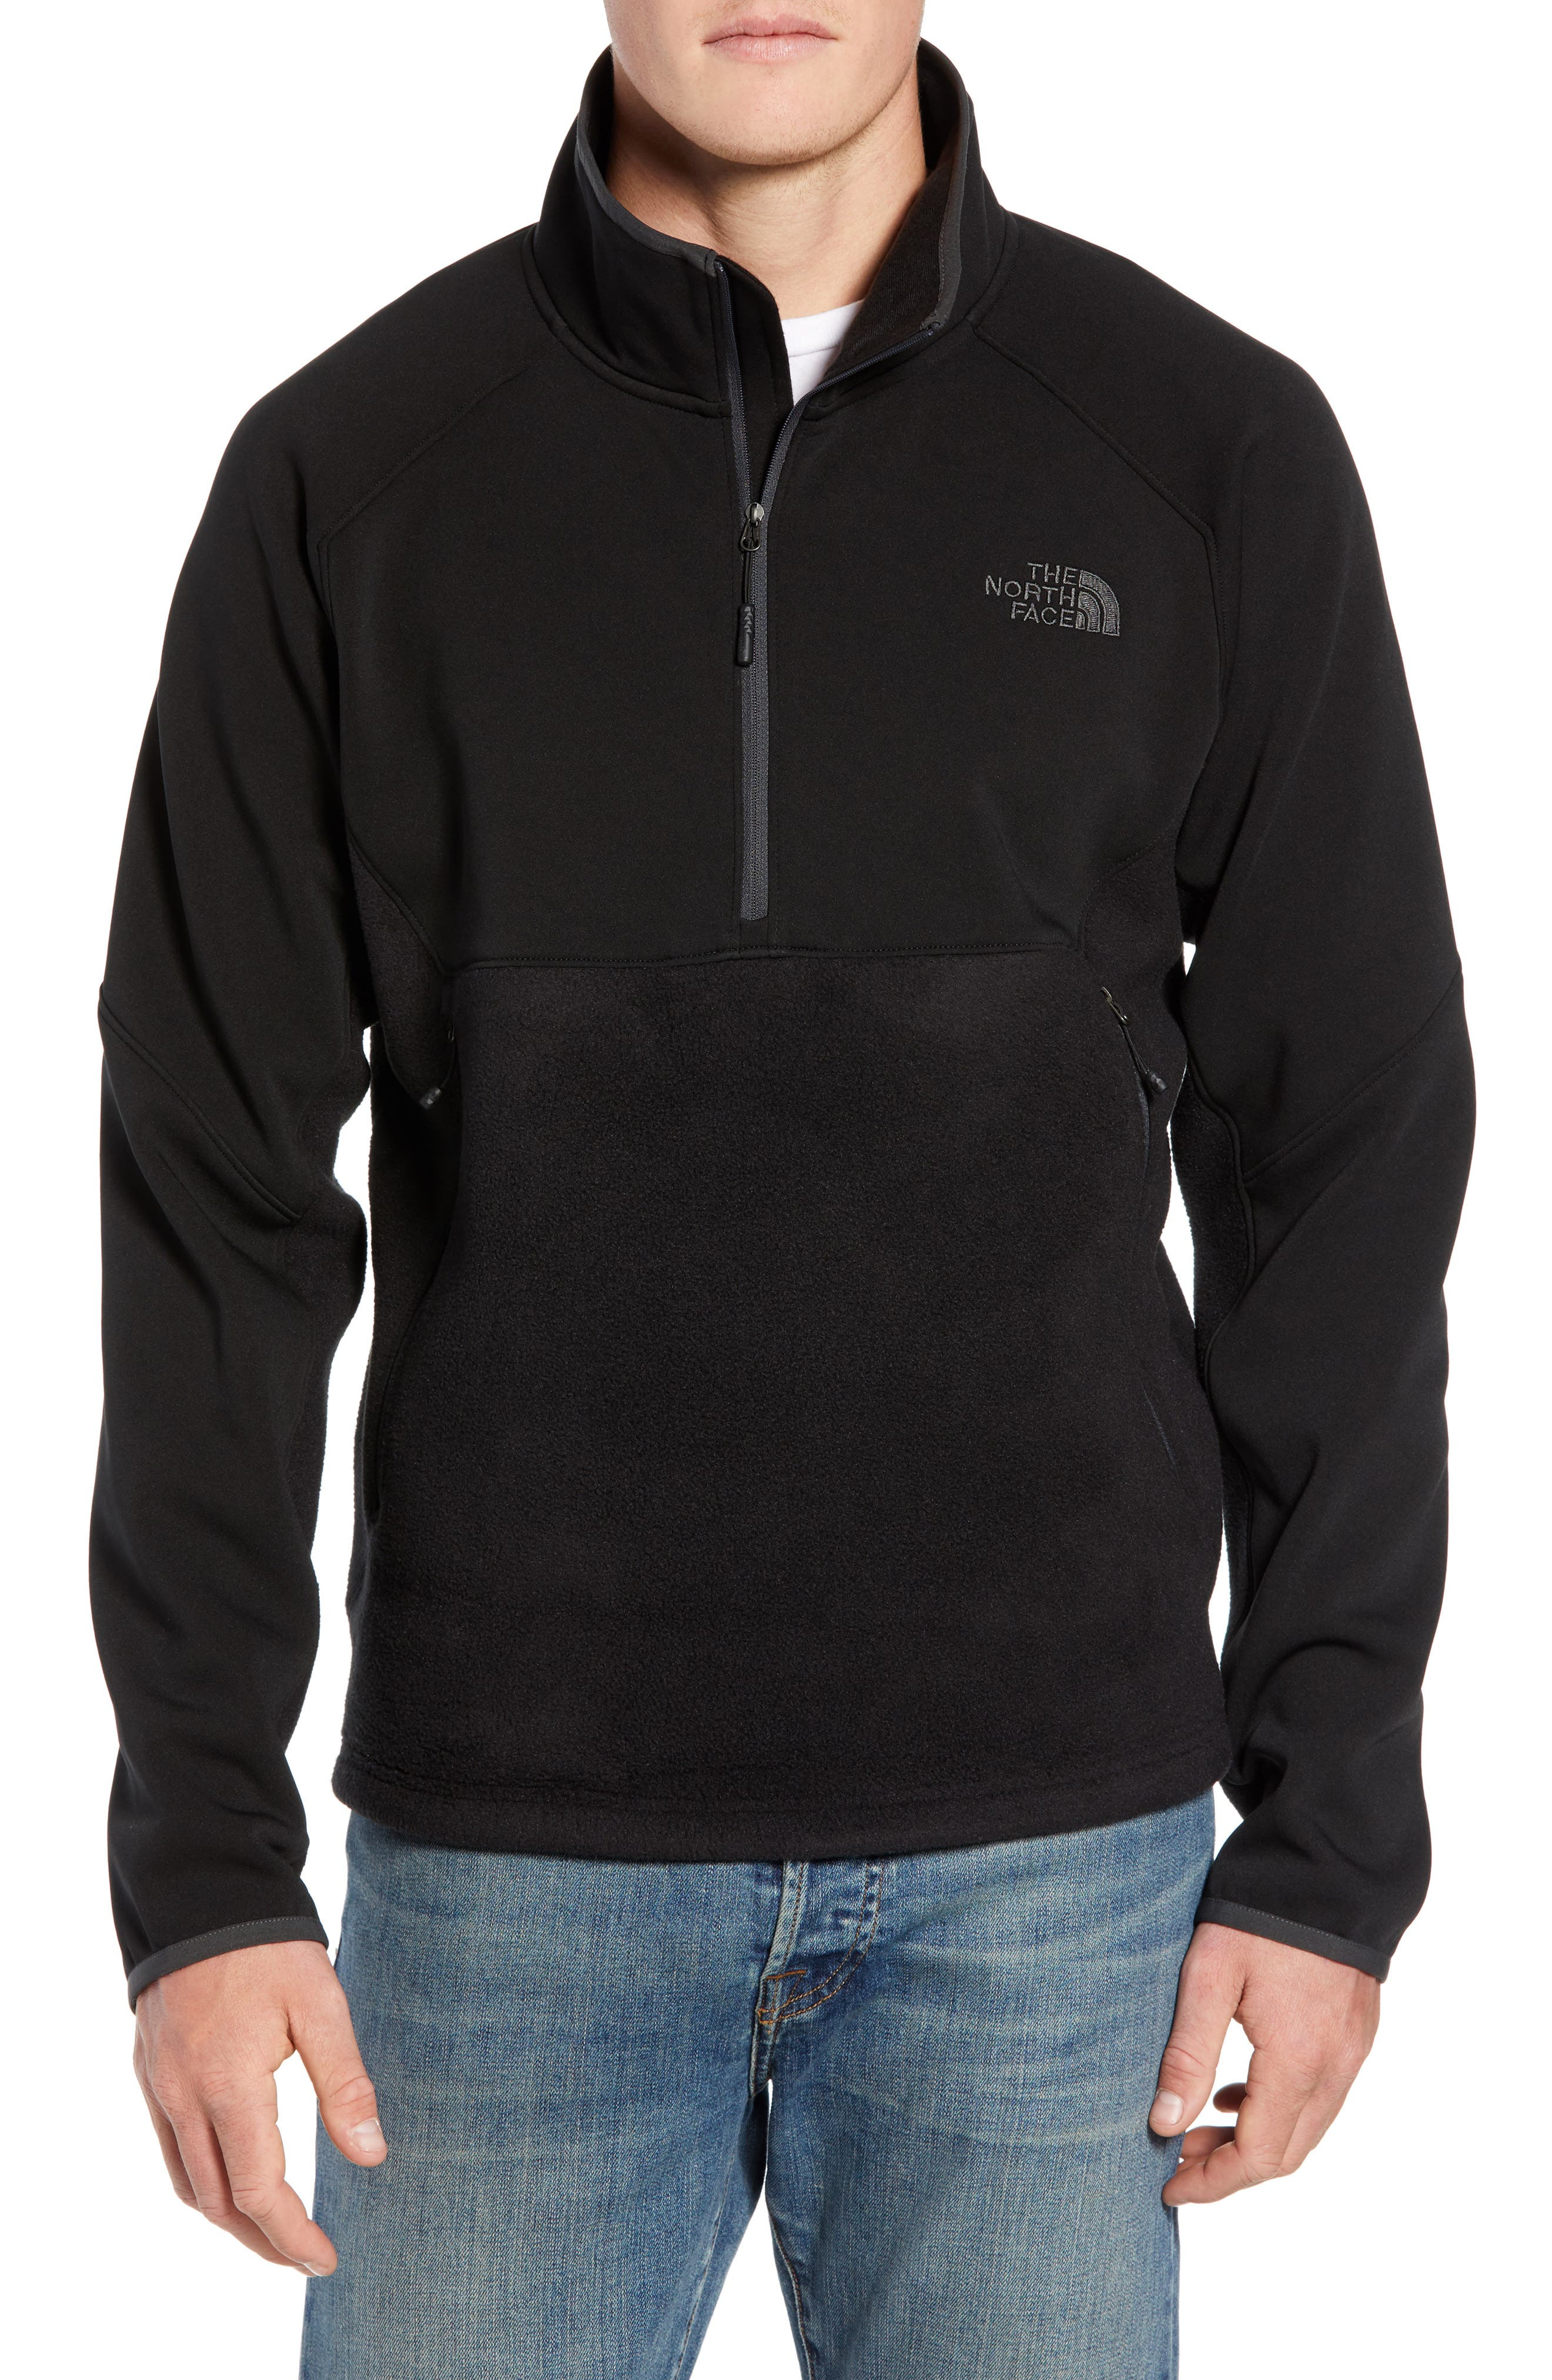 THE NORTH FACE, Tolmiepeak Hybrid Half-Zip Pullover, Main thumbnail 1, color, 001